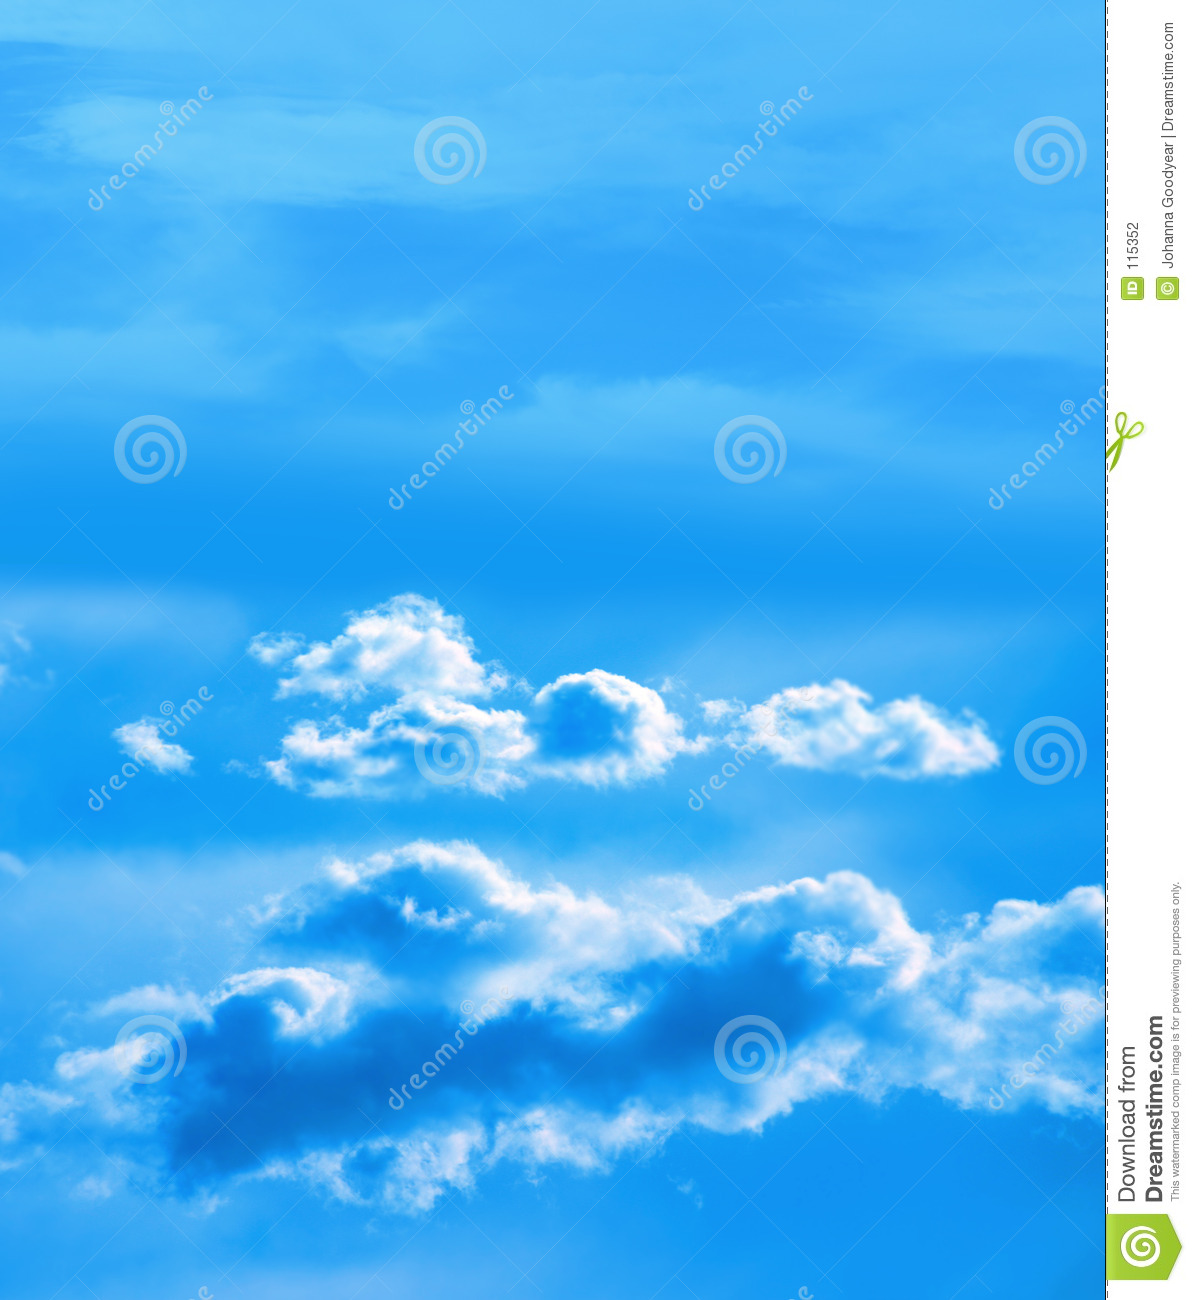 Sky with white puffy clouds